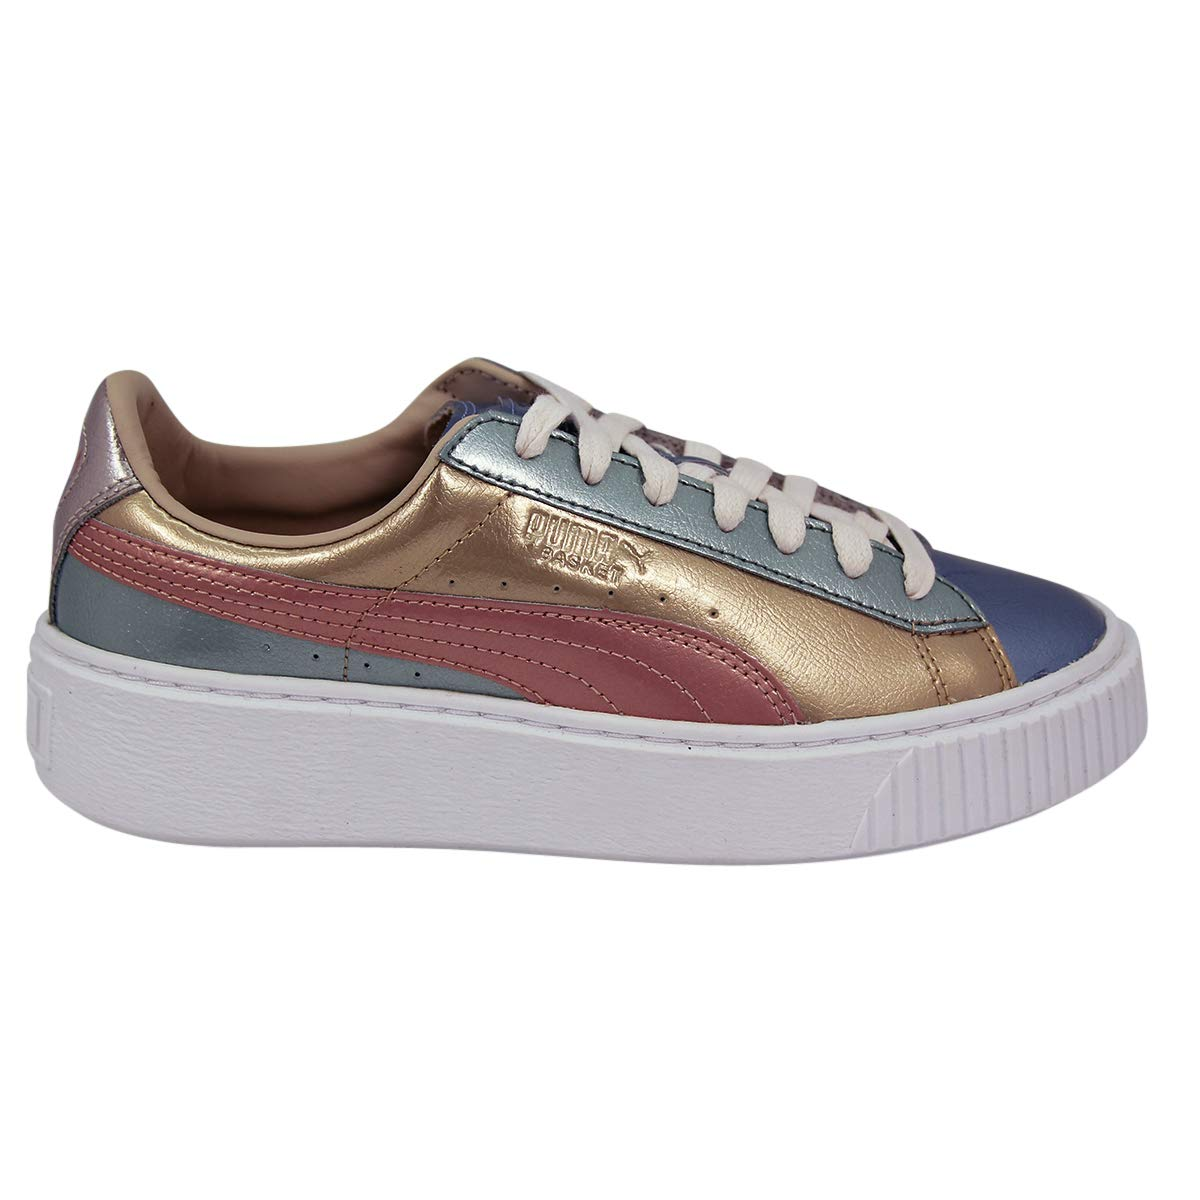 low priced 297d9 b5acd Puma WNS BASKET PLATFORM BAUBLE Leather Women Sneakers Shoes ...